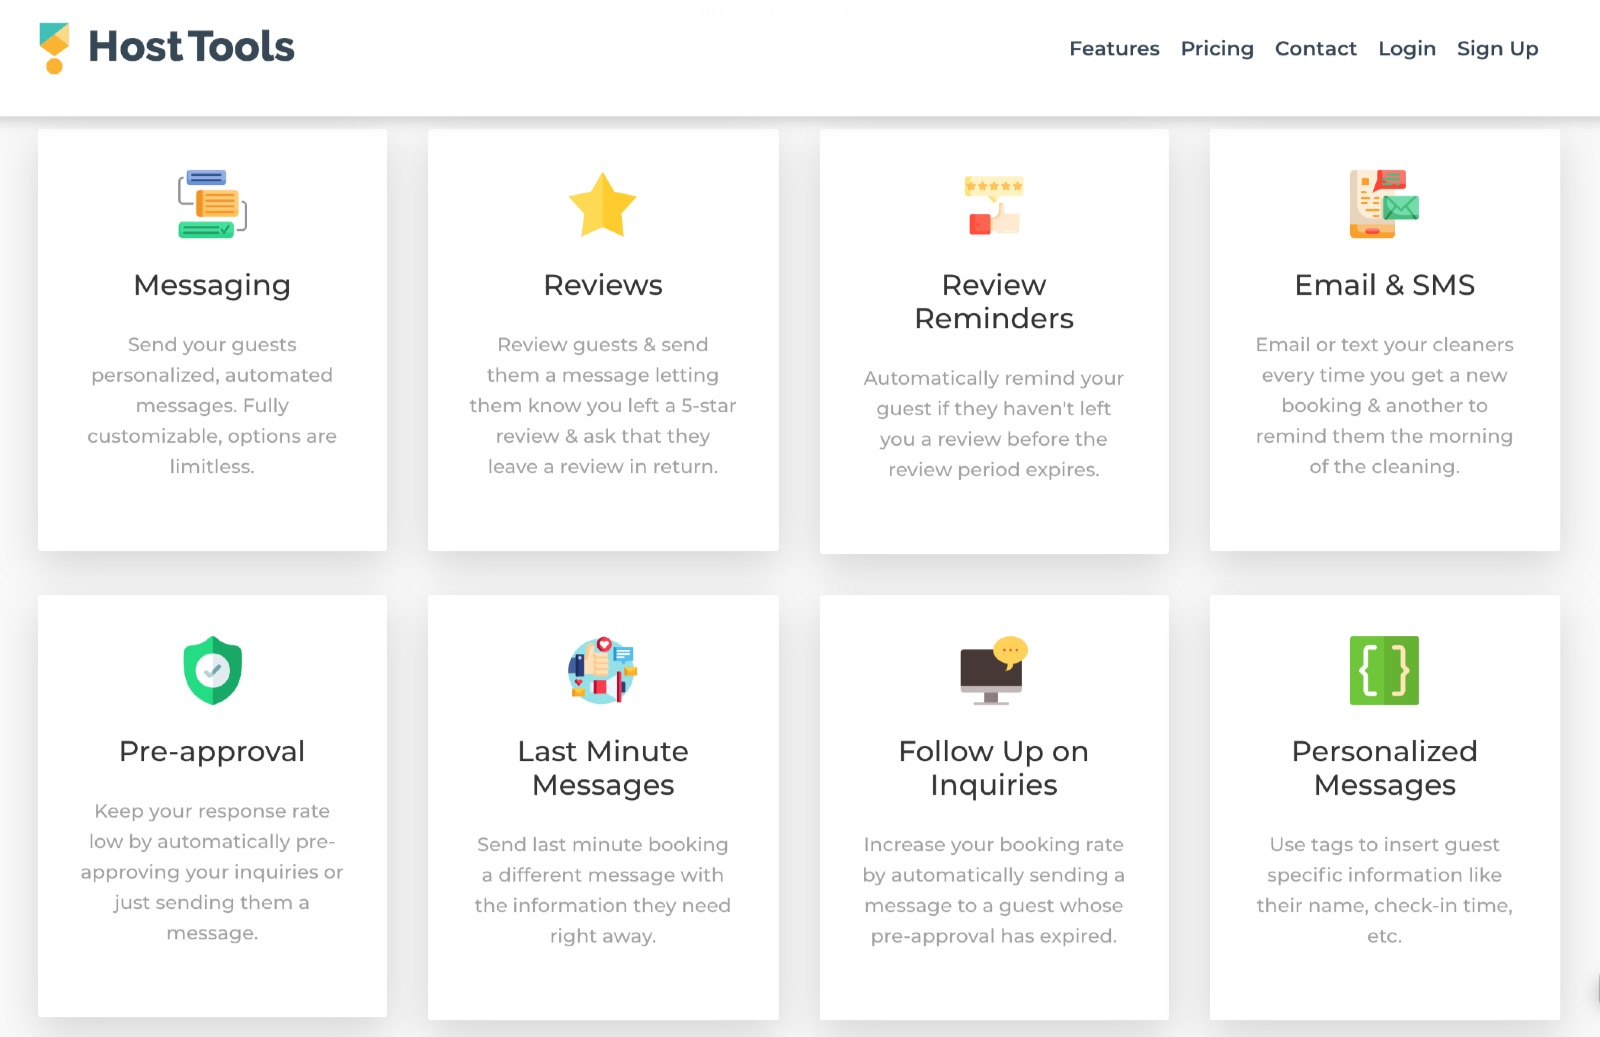 Host Tools automated airbnb messaging